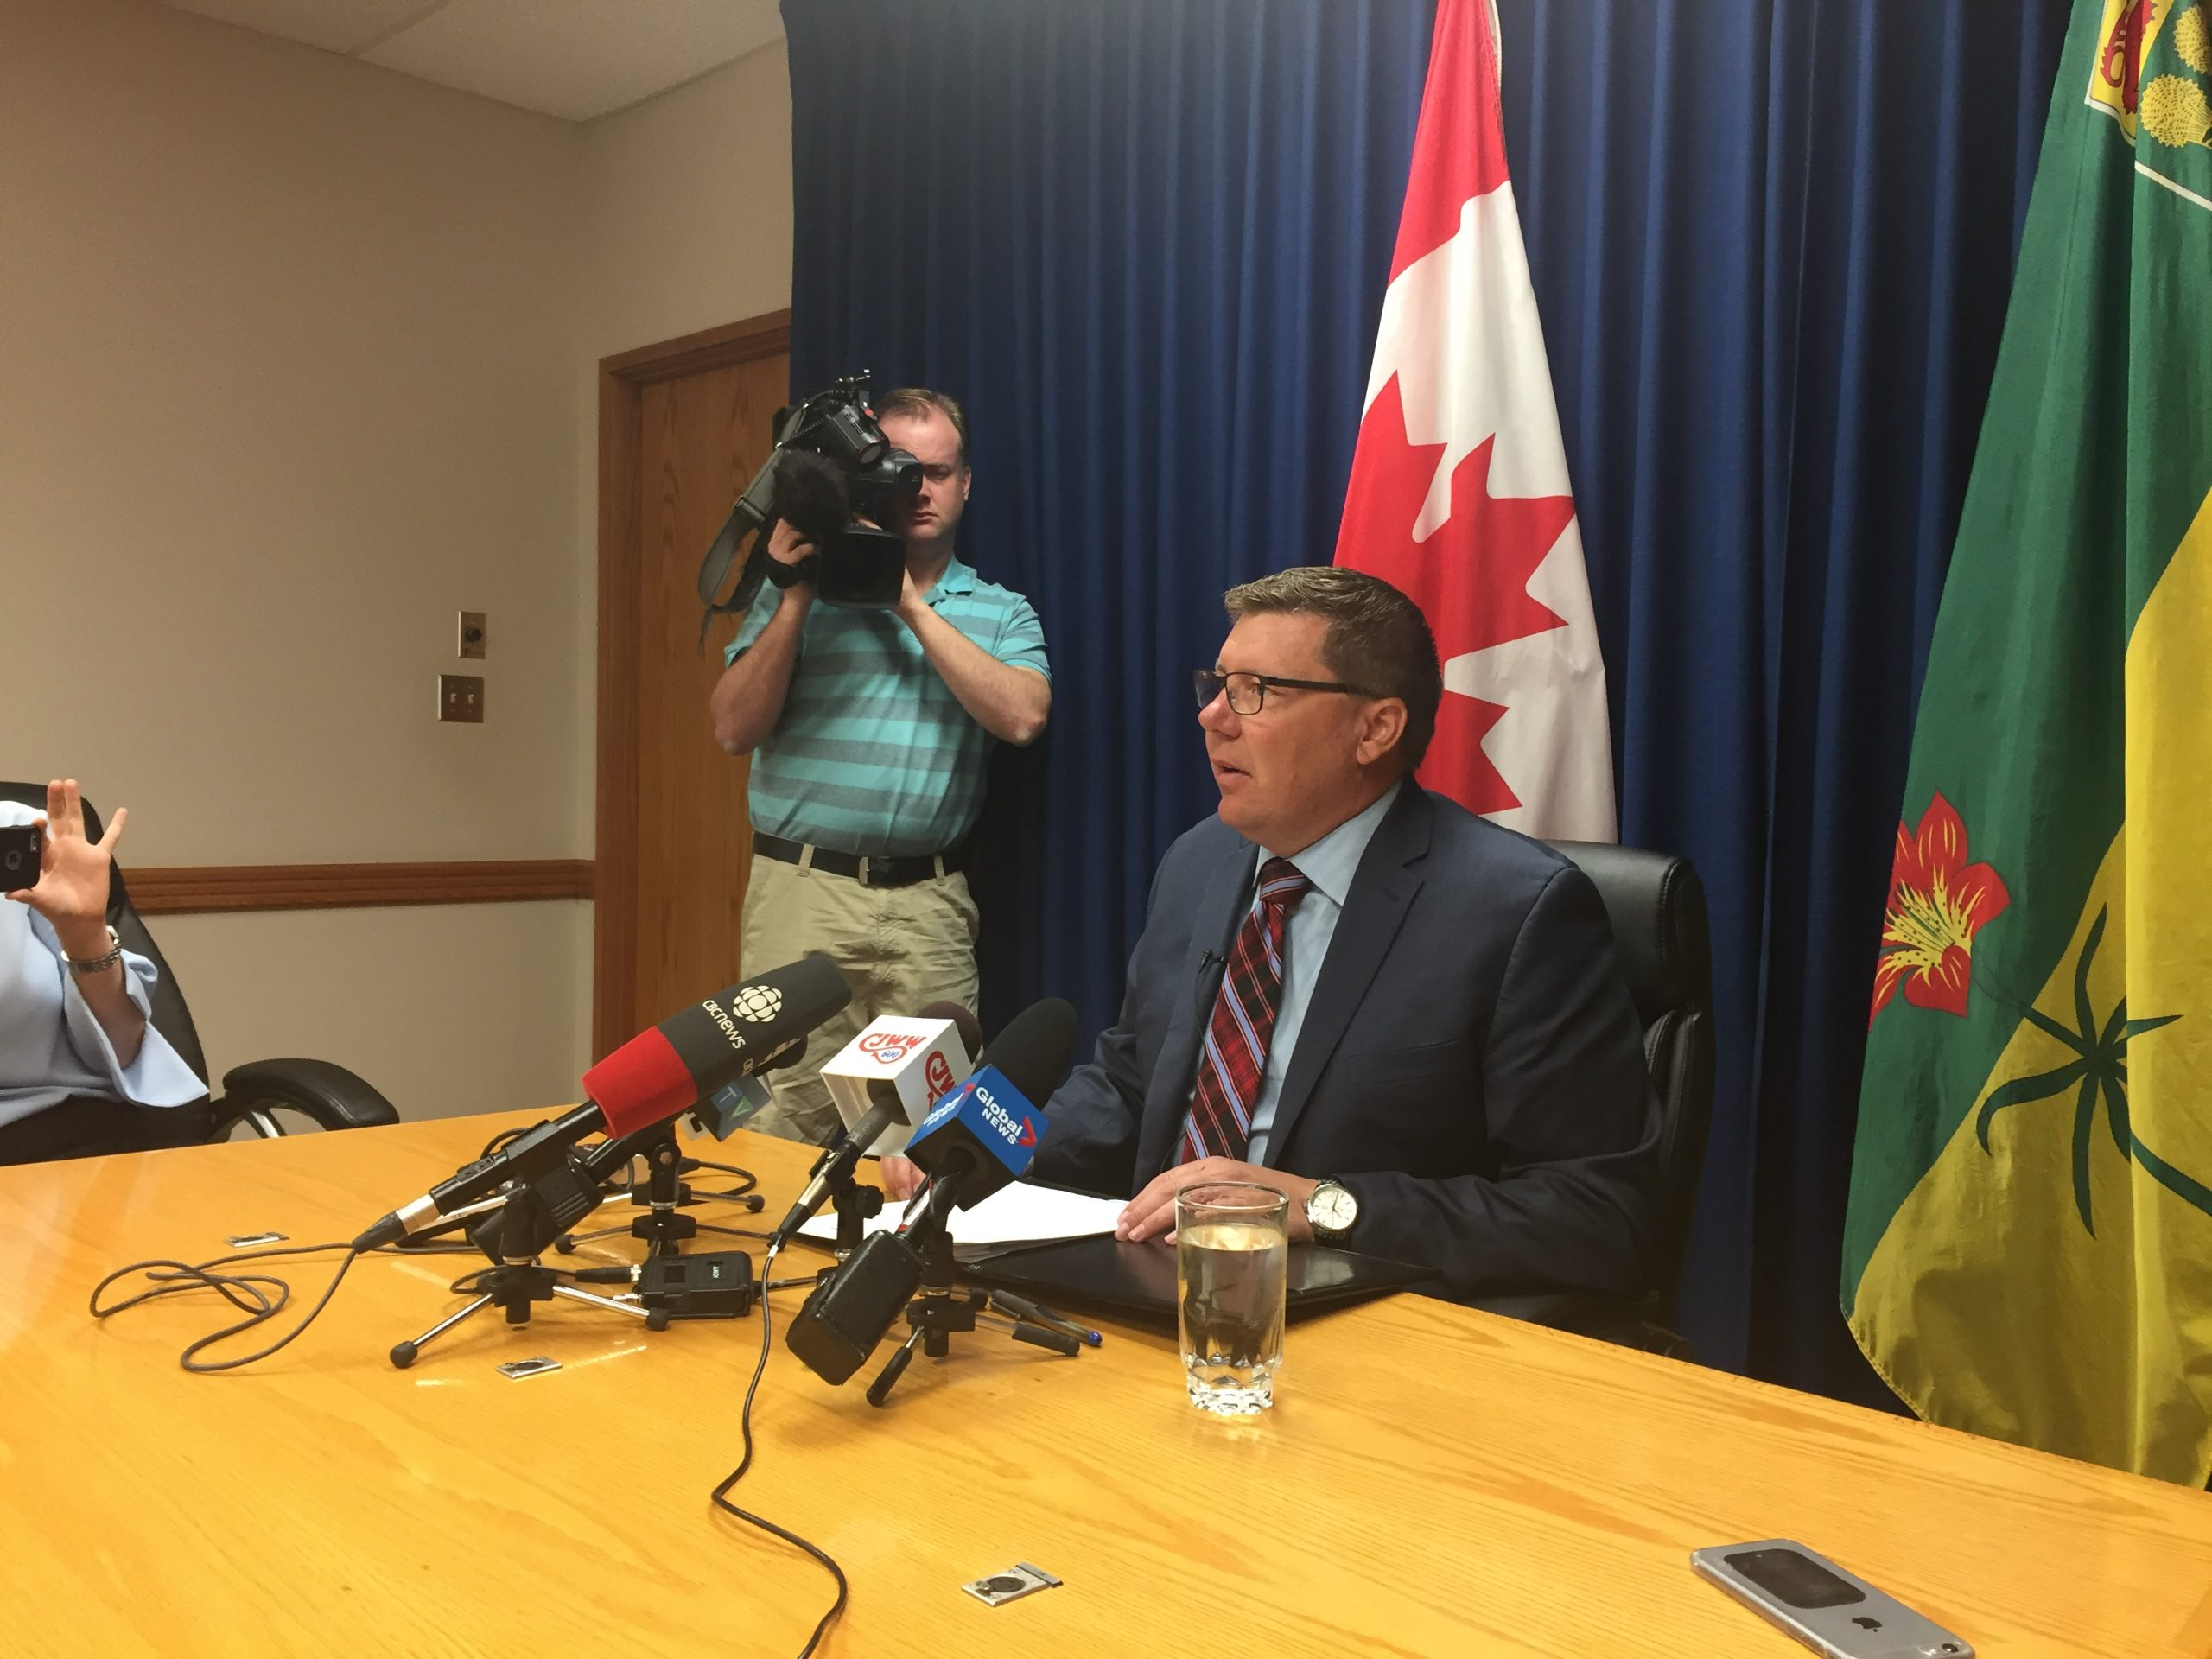 Premier Moe Announces New Formula for Equalization